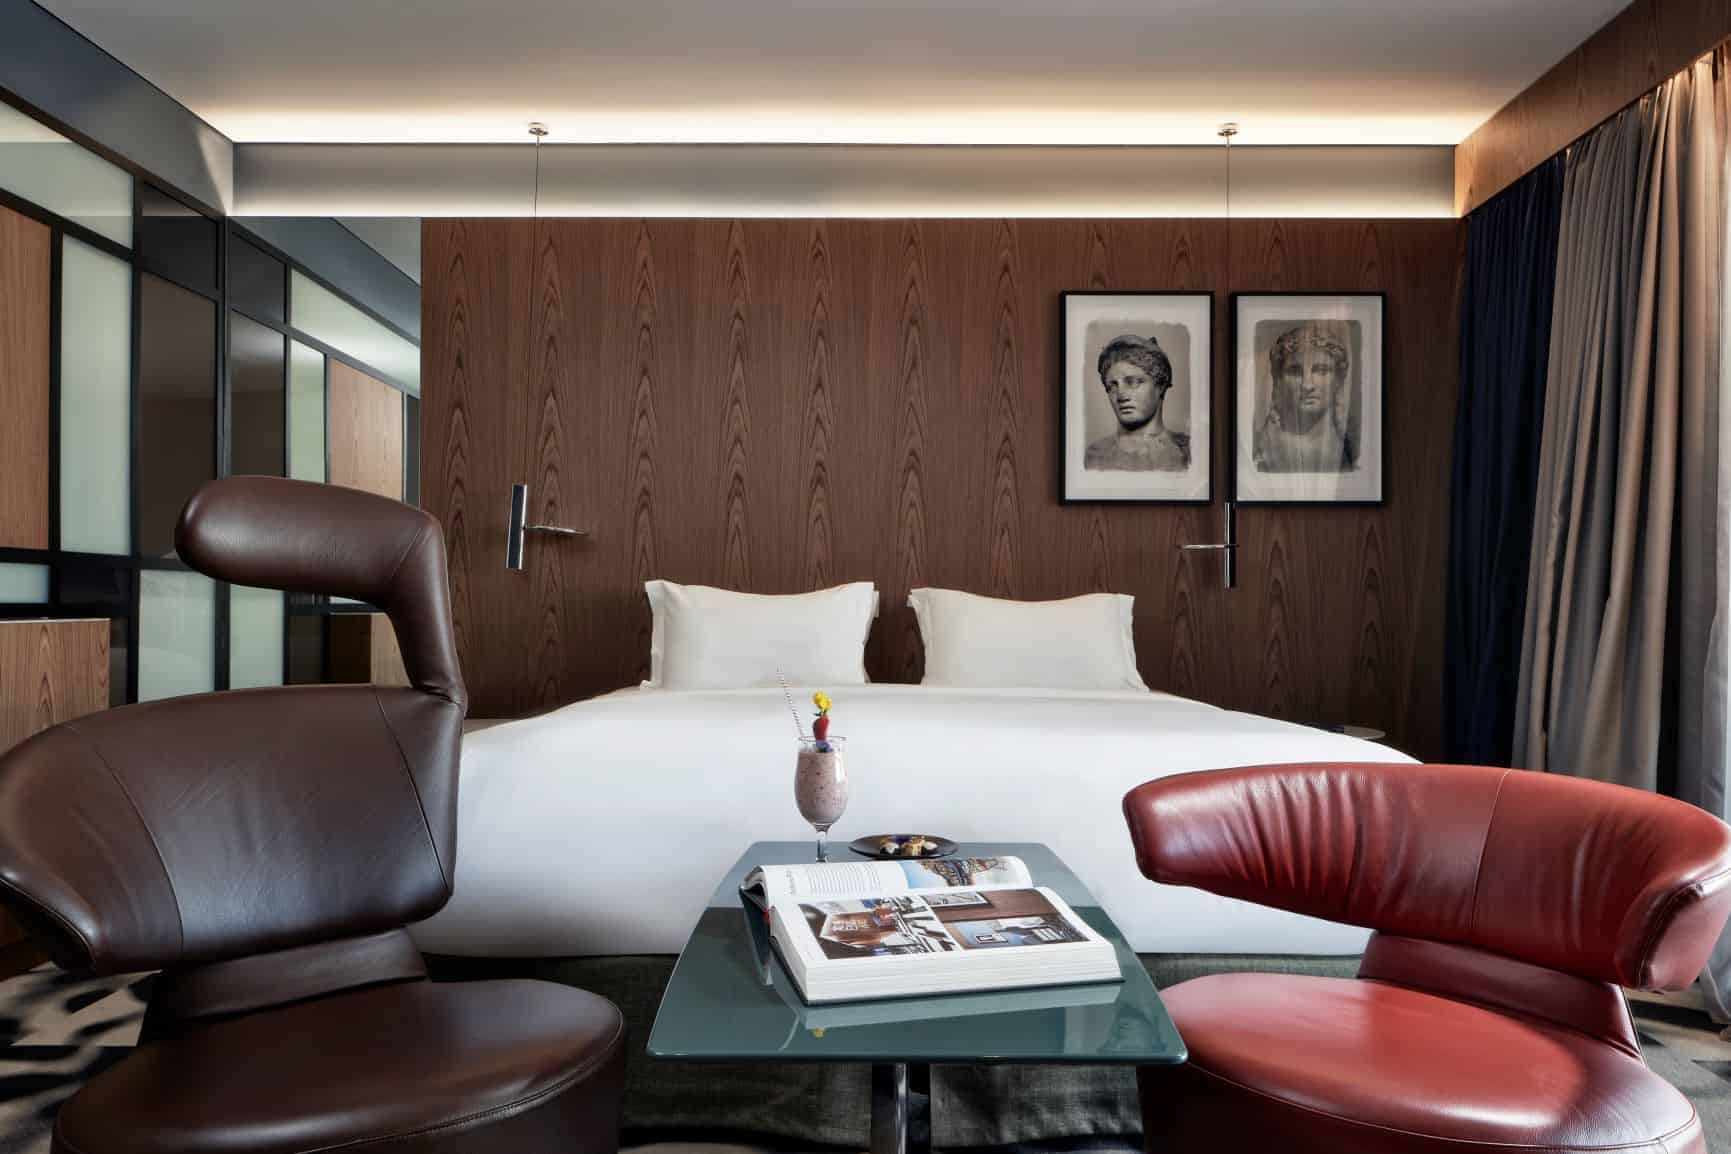 Rooms and suites at AthensWas are spacious and boast stylish, contemporary furnishings